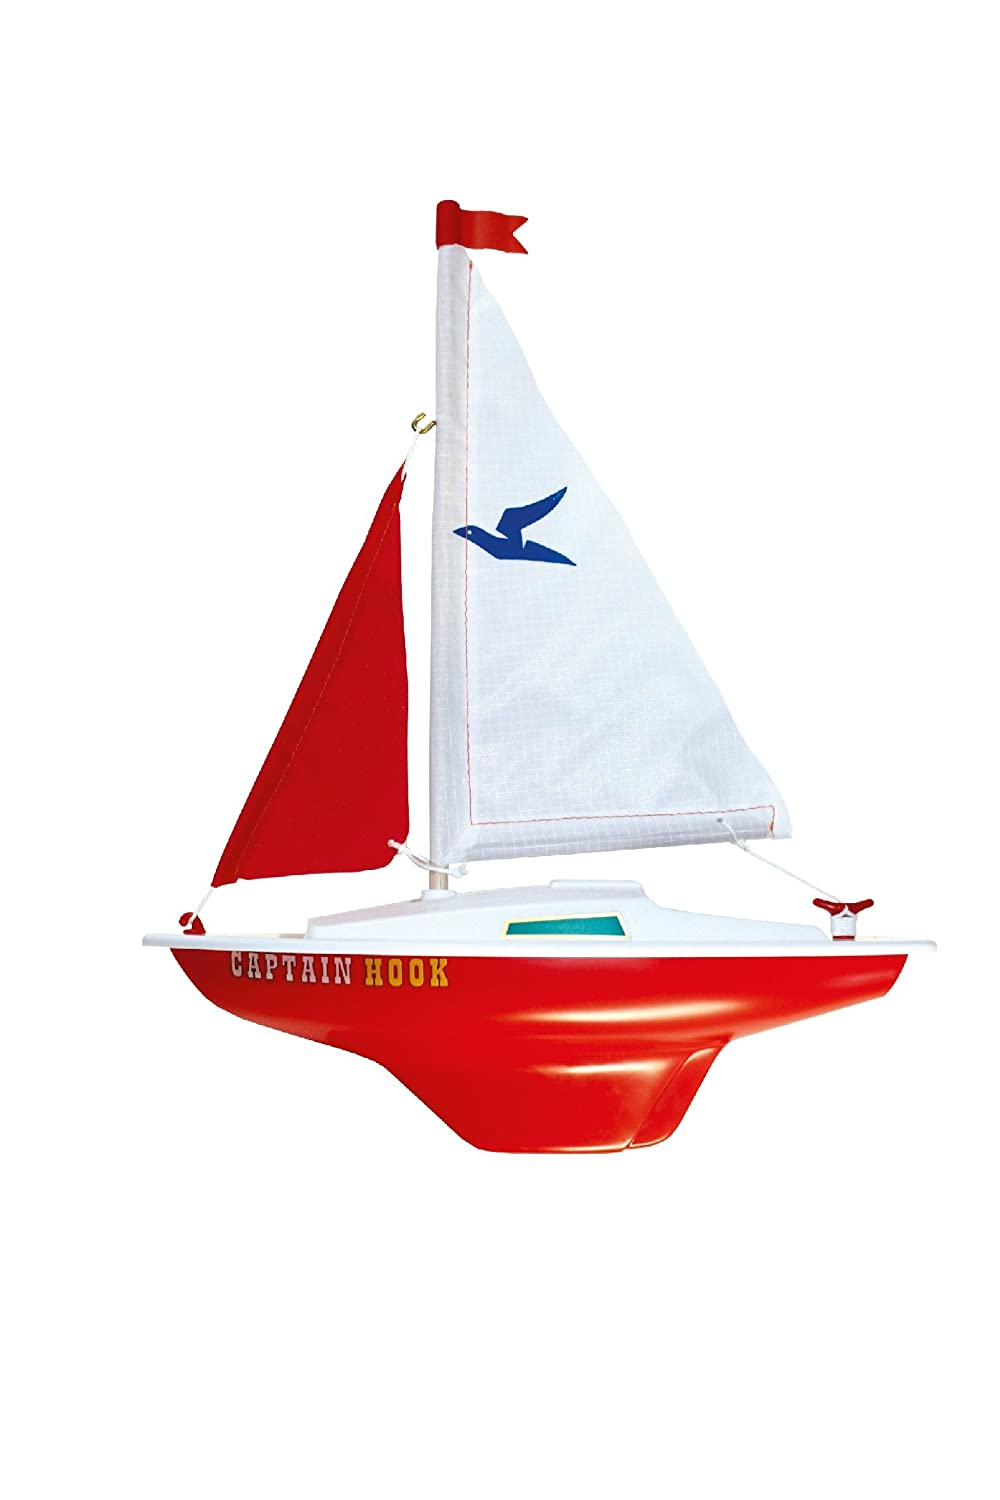 Guenther 1830 25 cm Captain Hook Sailing Boat Model: Amazon.co.uk: Toys &  Games